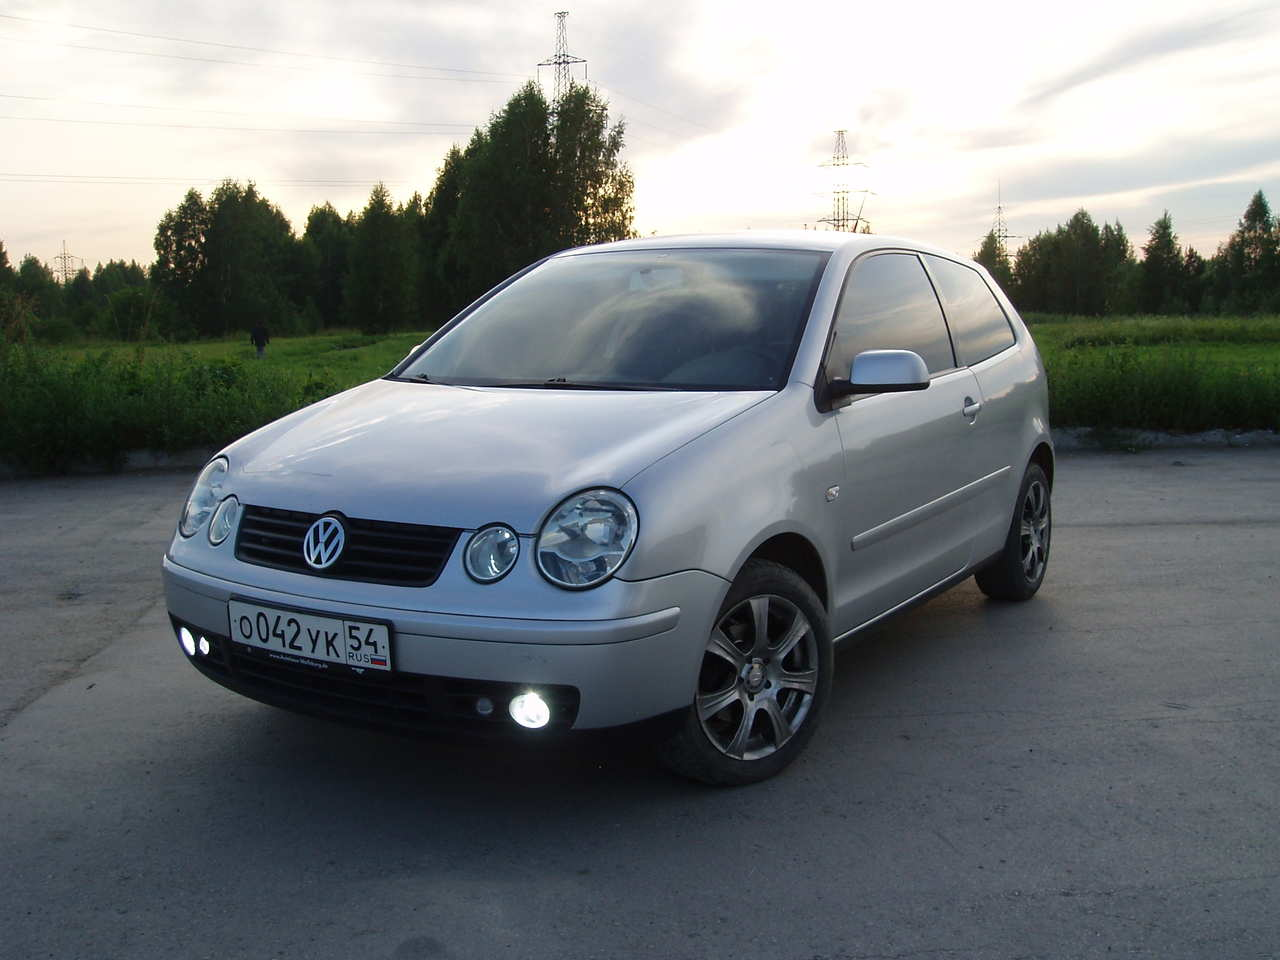 Volkswagen Polo 1.4 2002 photo - 2